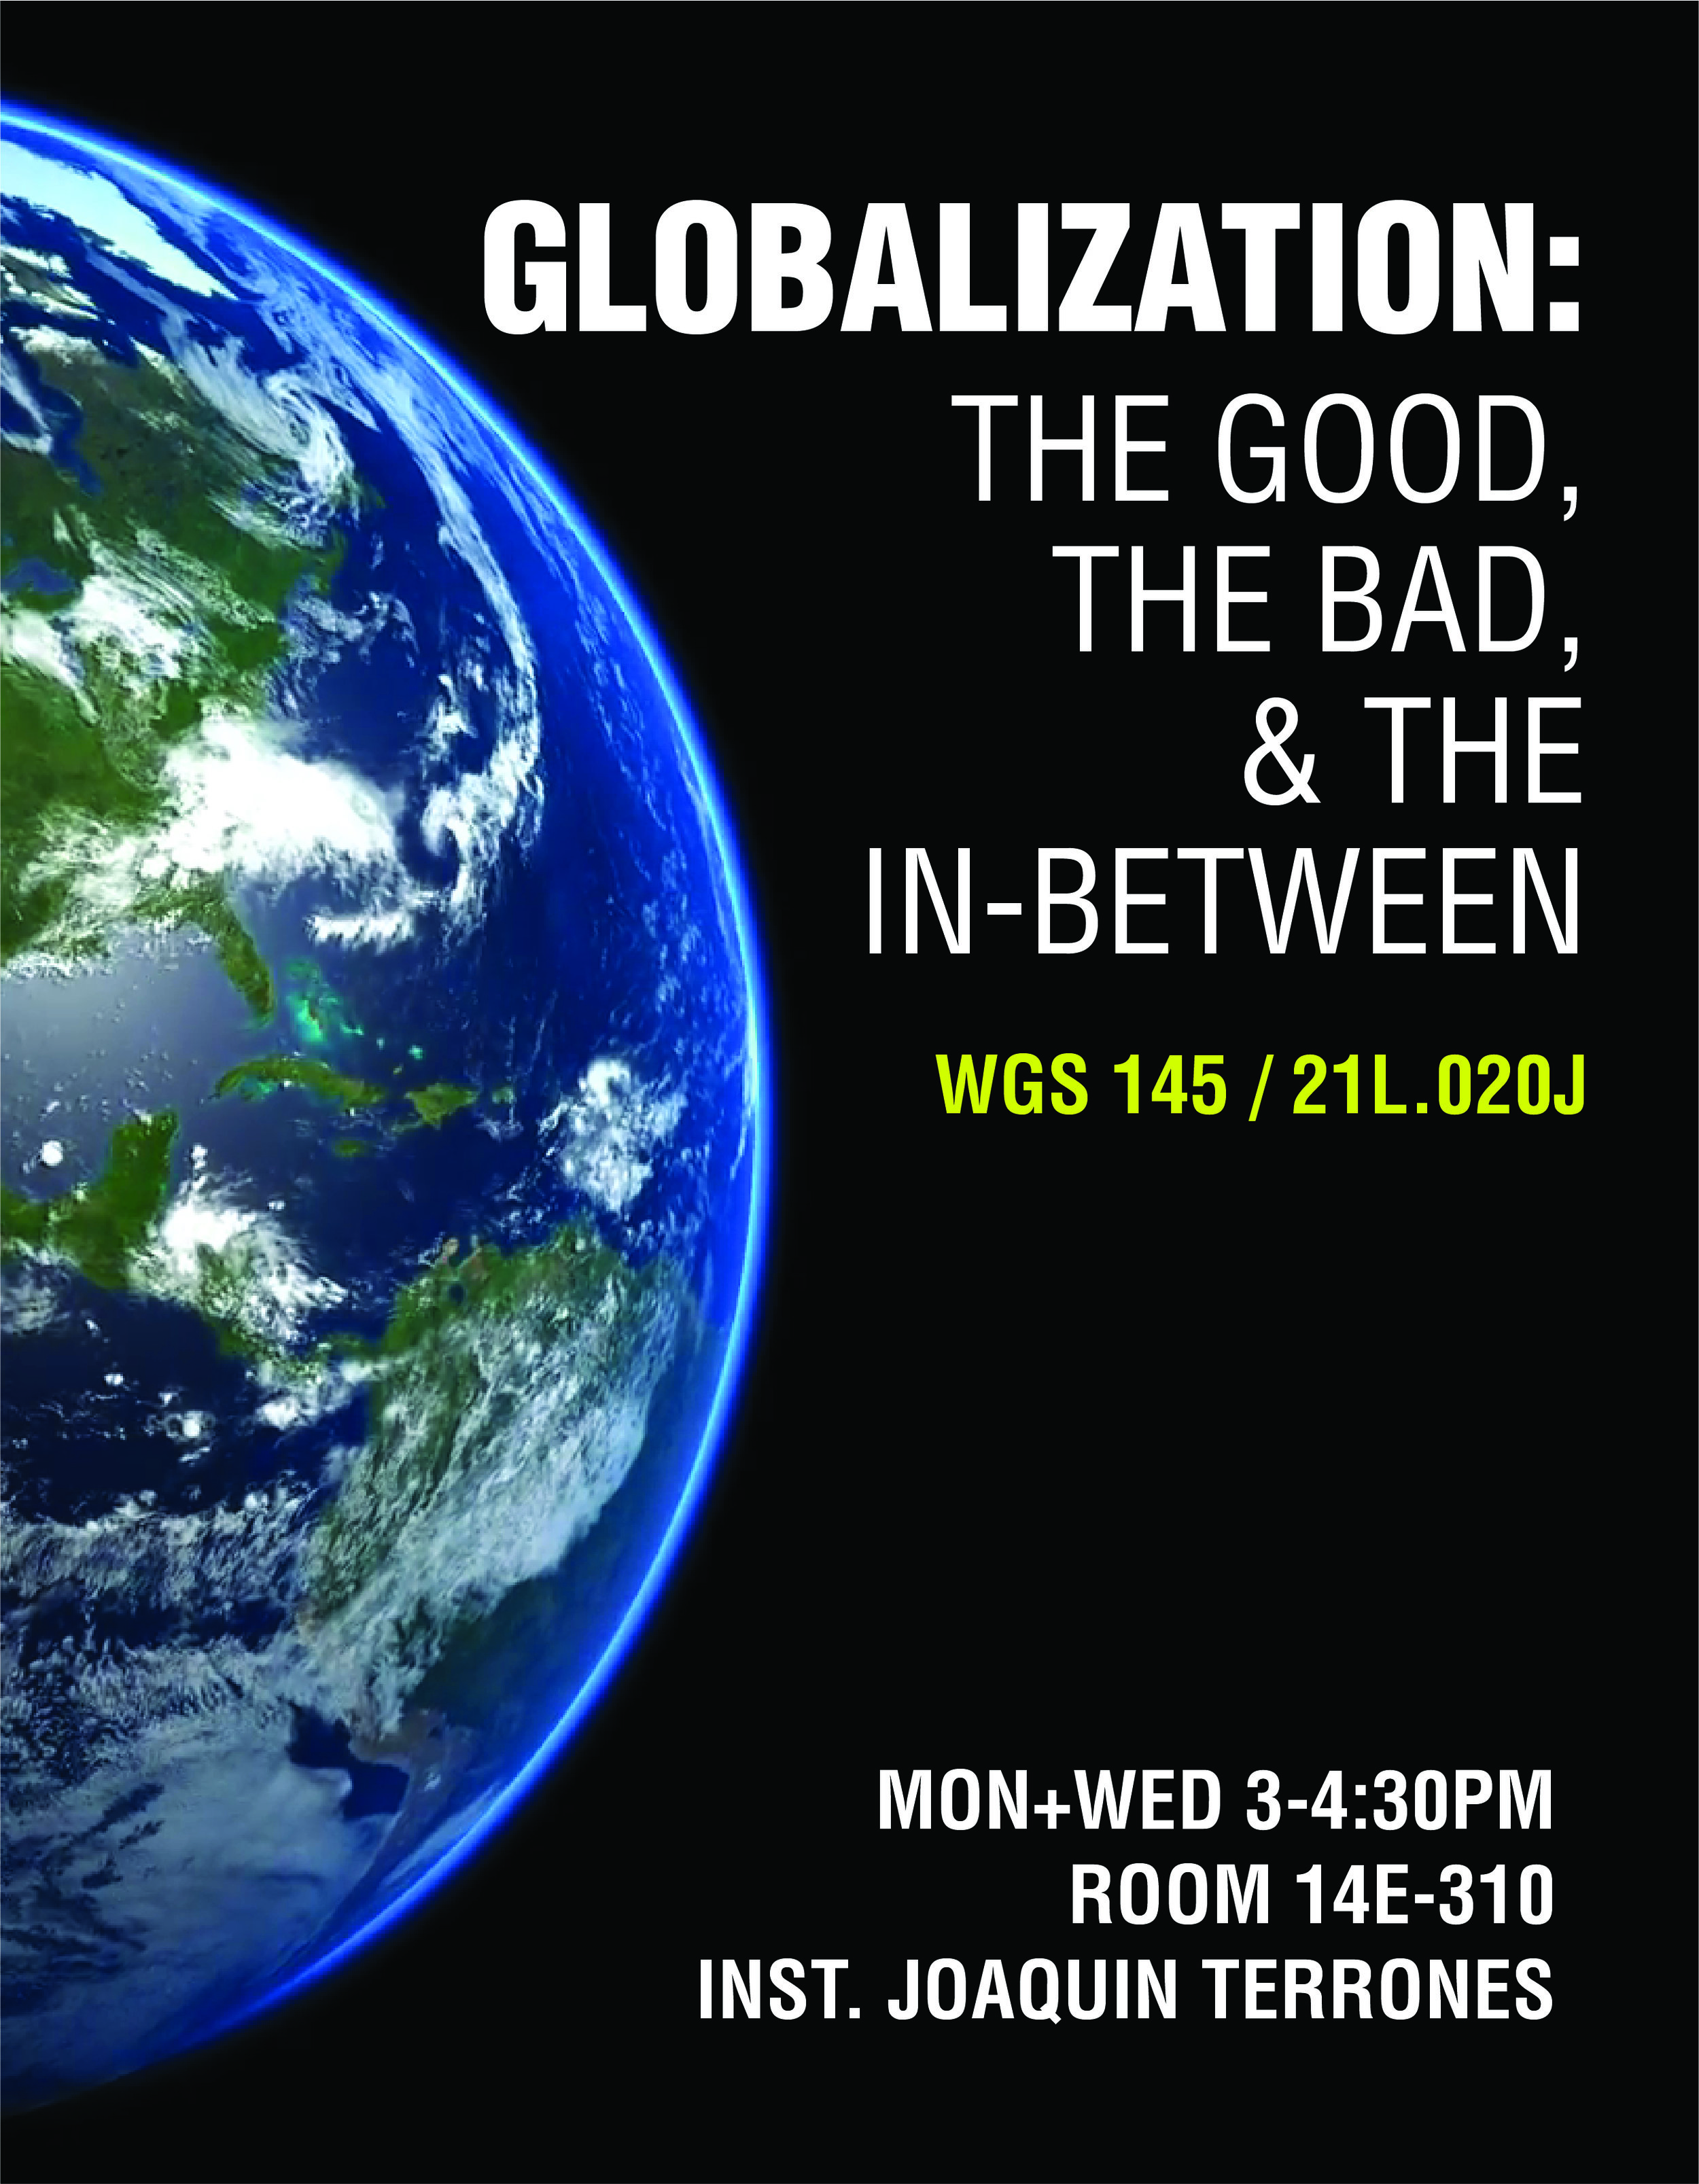 is globalization good or bad